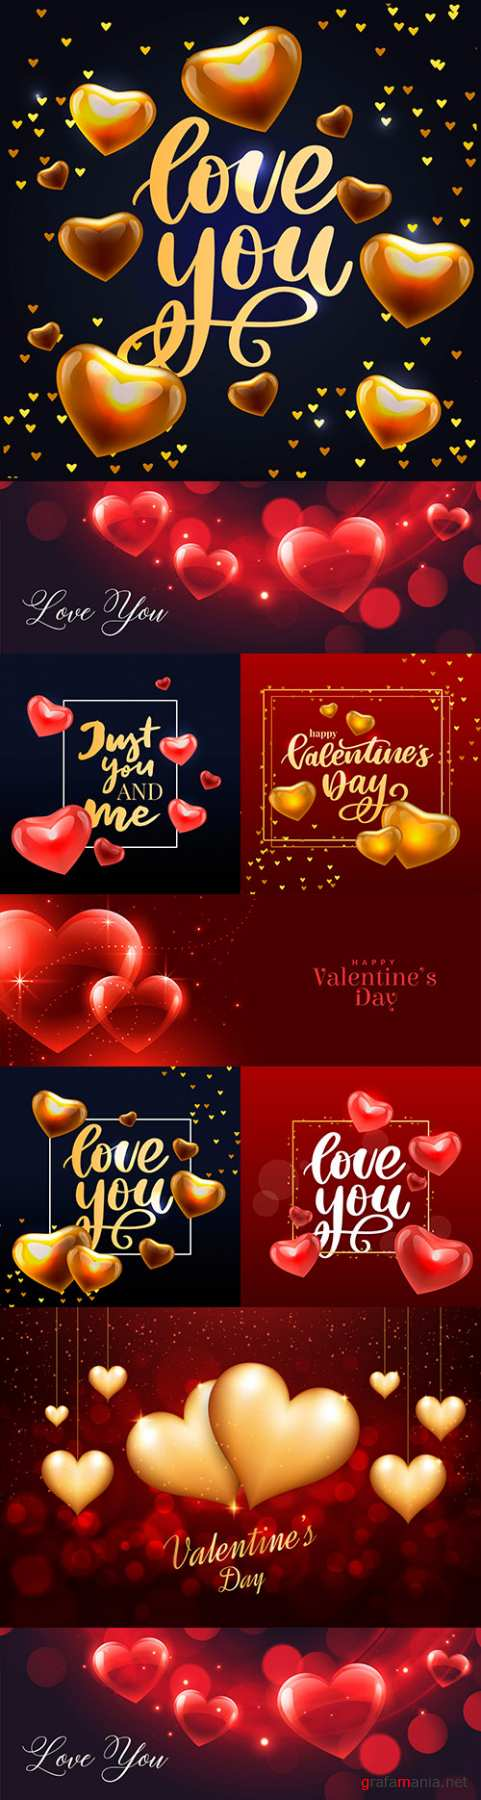 Valentine's Day romantic elements decorative illustrations 19